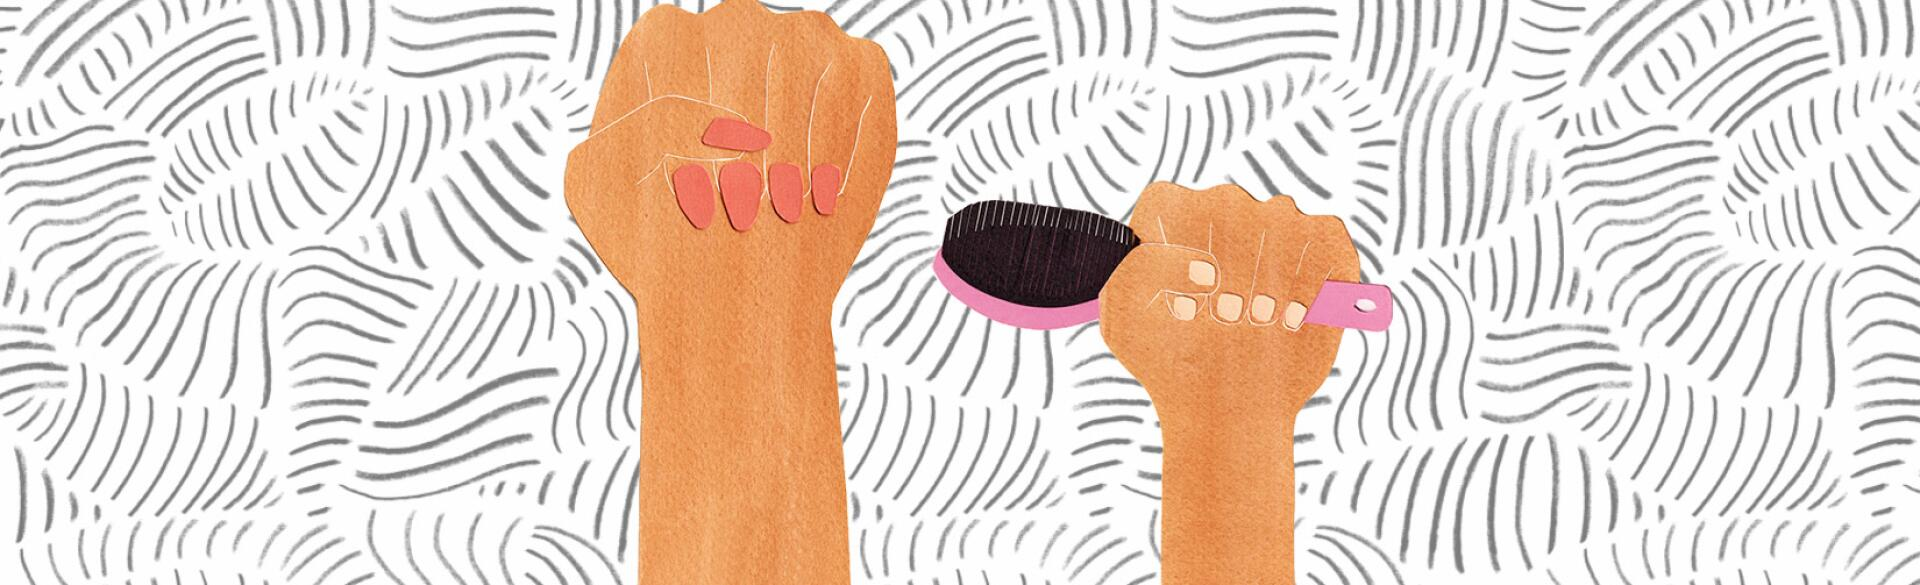 illustration of adult woman hand making a fist and young girl hand holding a pink hairbrush